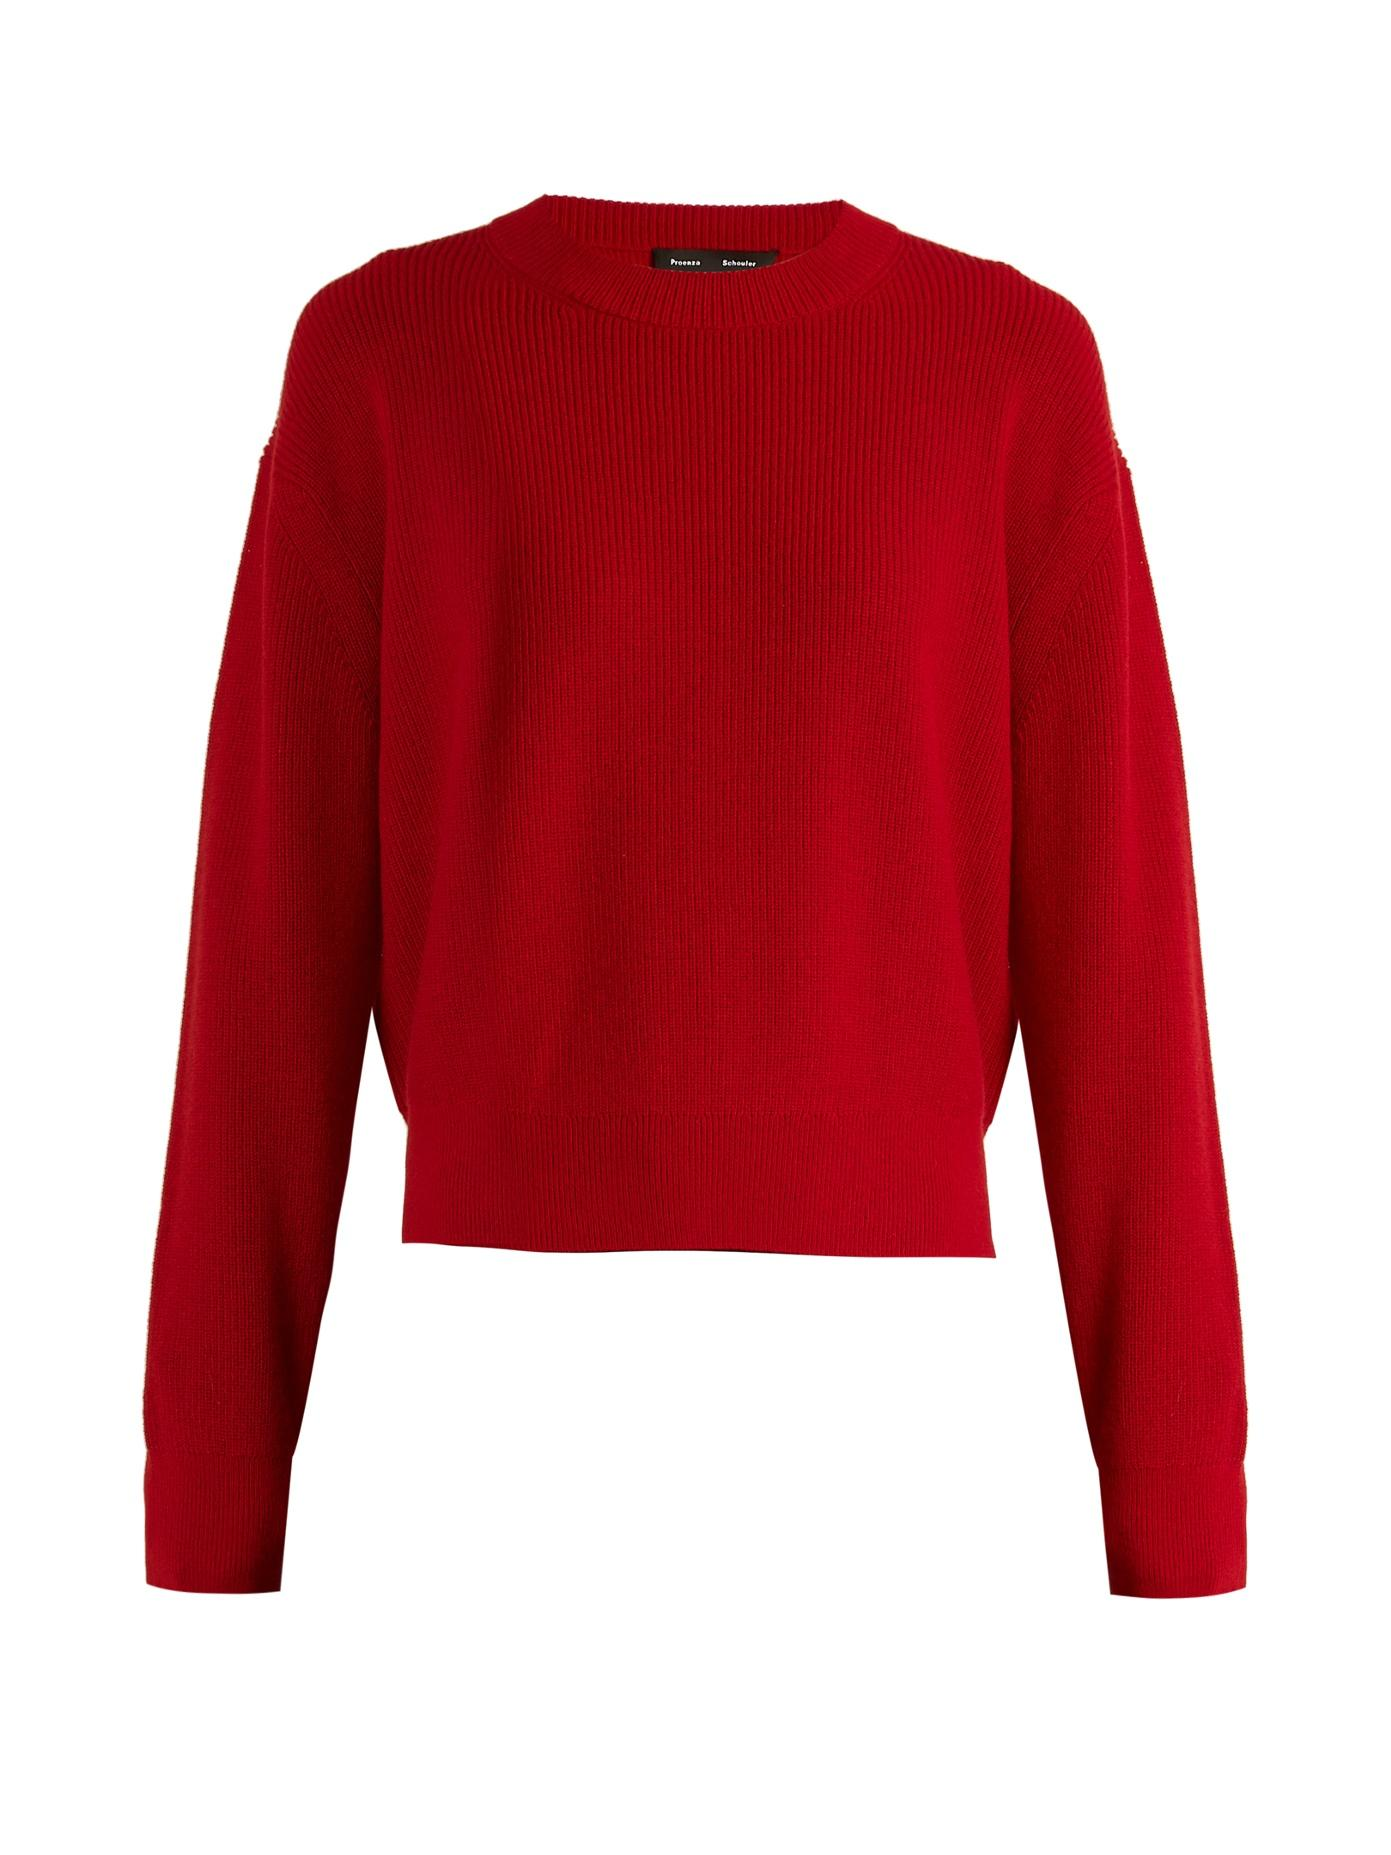 Proenza Schouler Zip-detail Wool And Cashmere-blend Knit Sweater In Dark Red